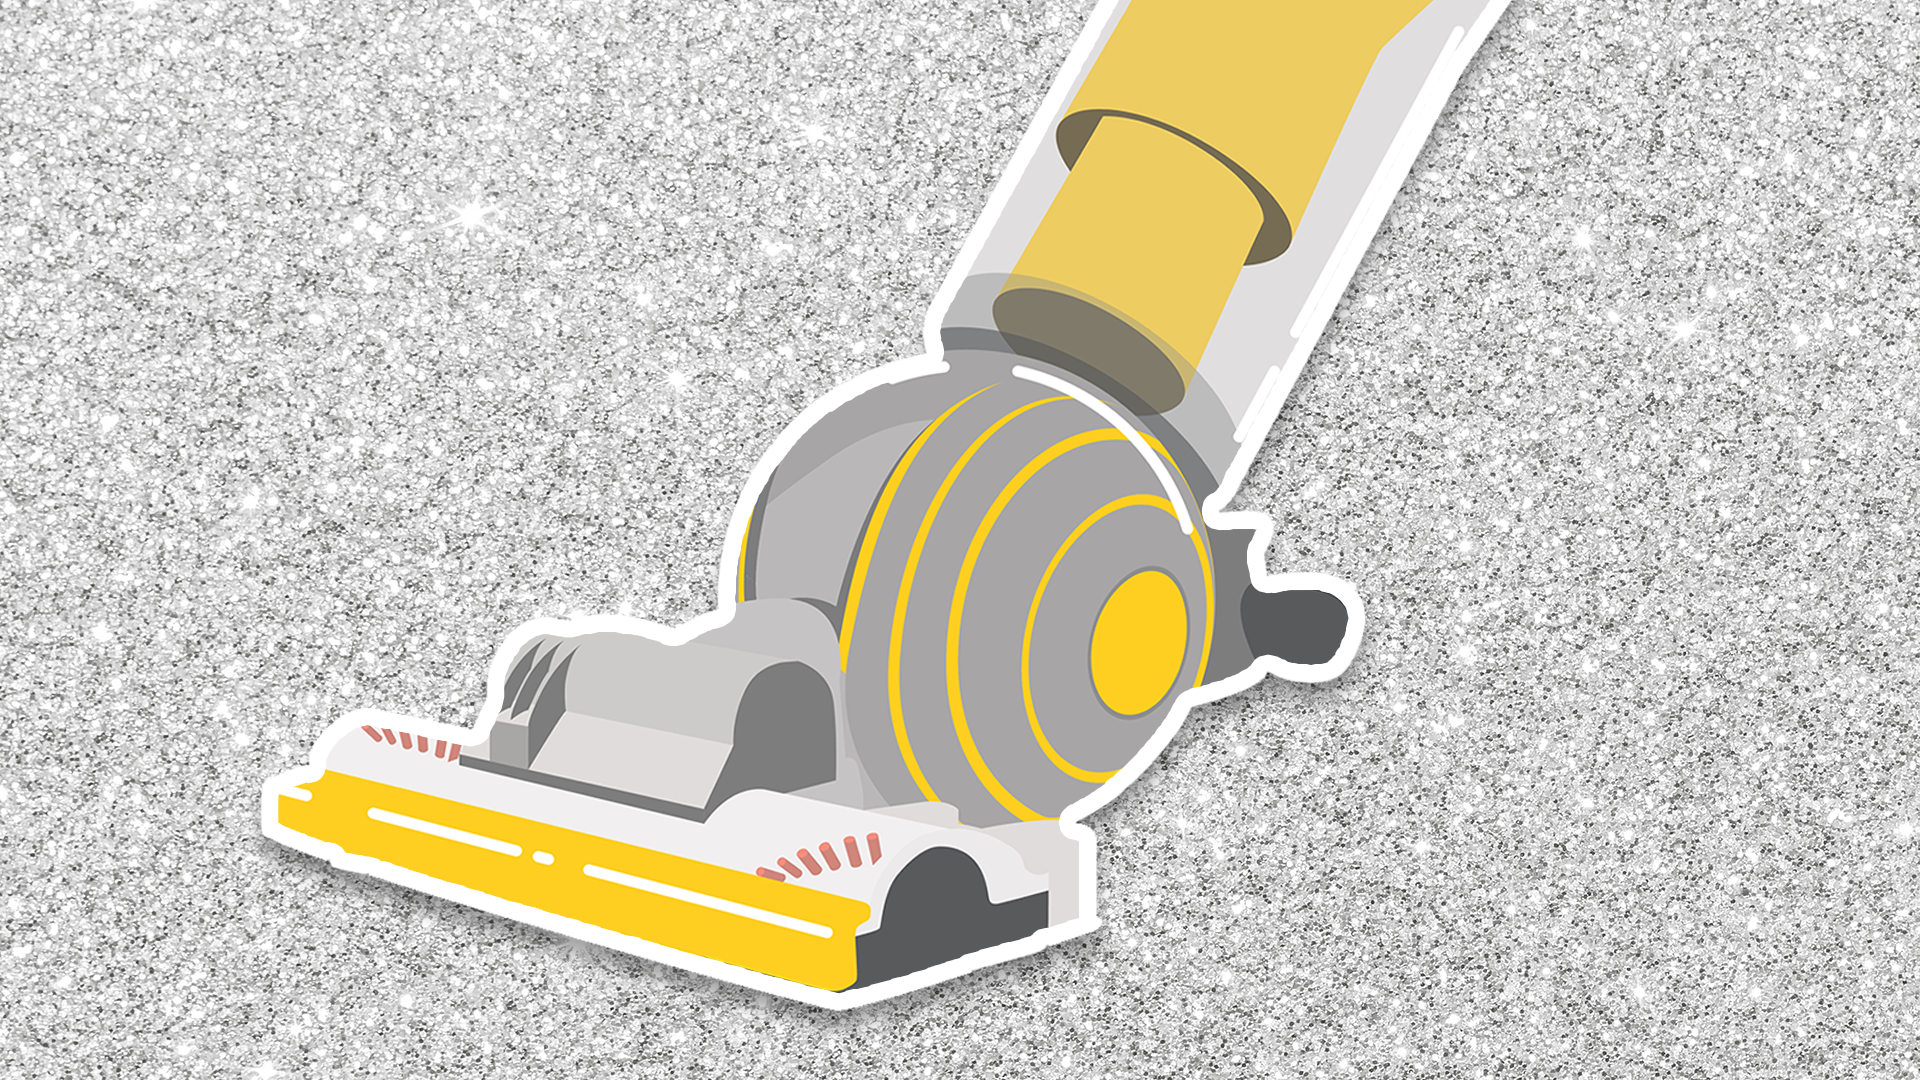 These Labor Day Dyson Deals Are So Good, You'd Be Silly Not To Shop Them